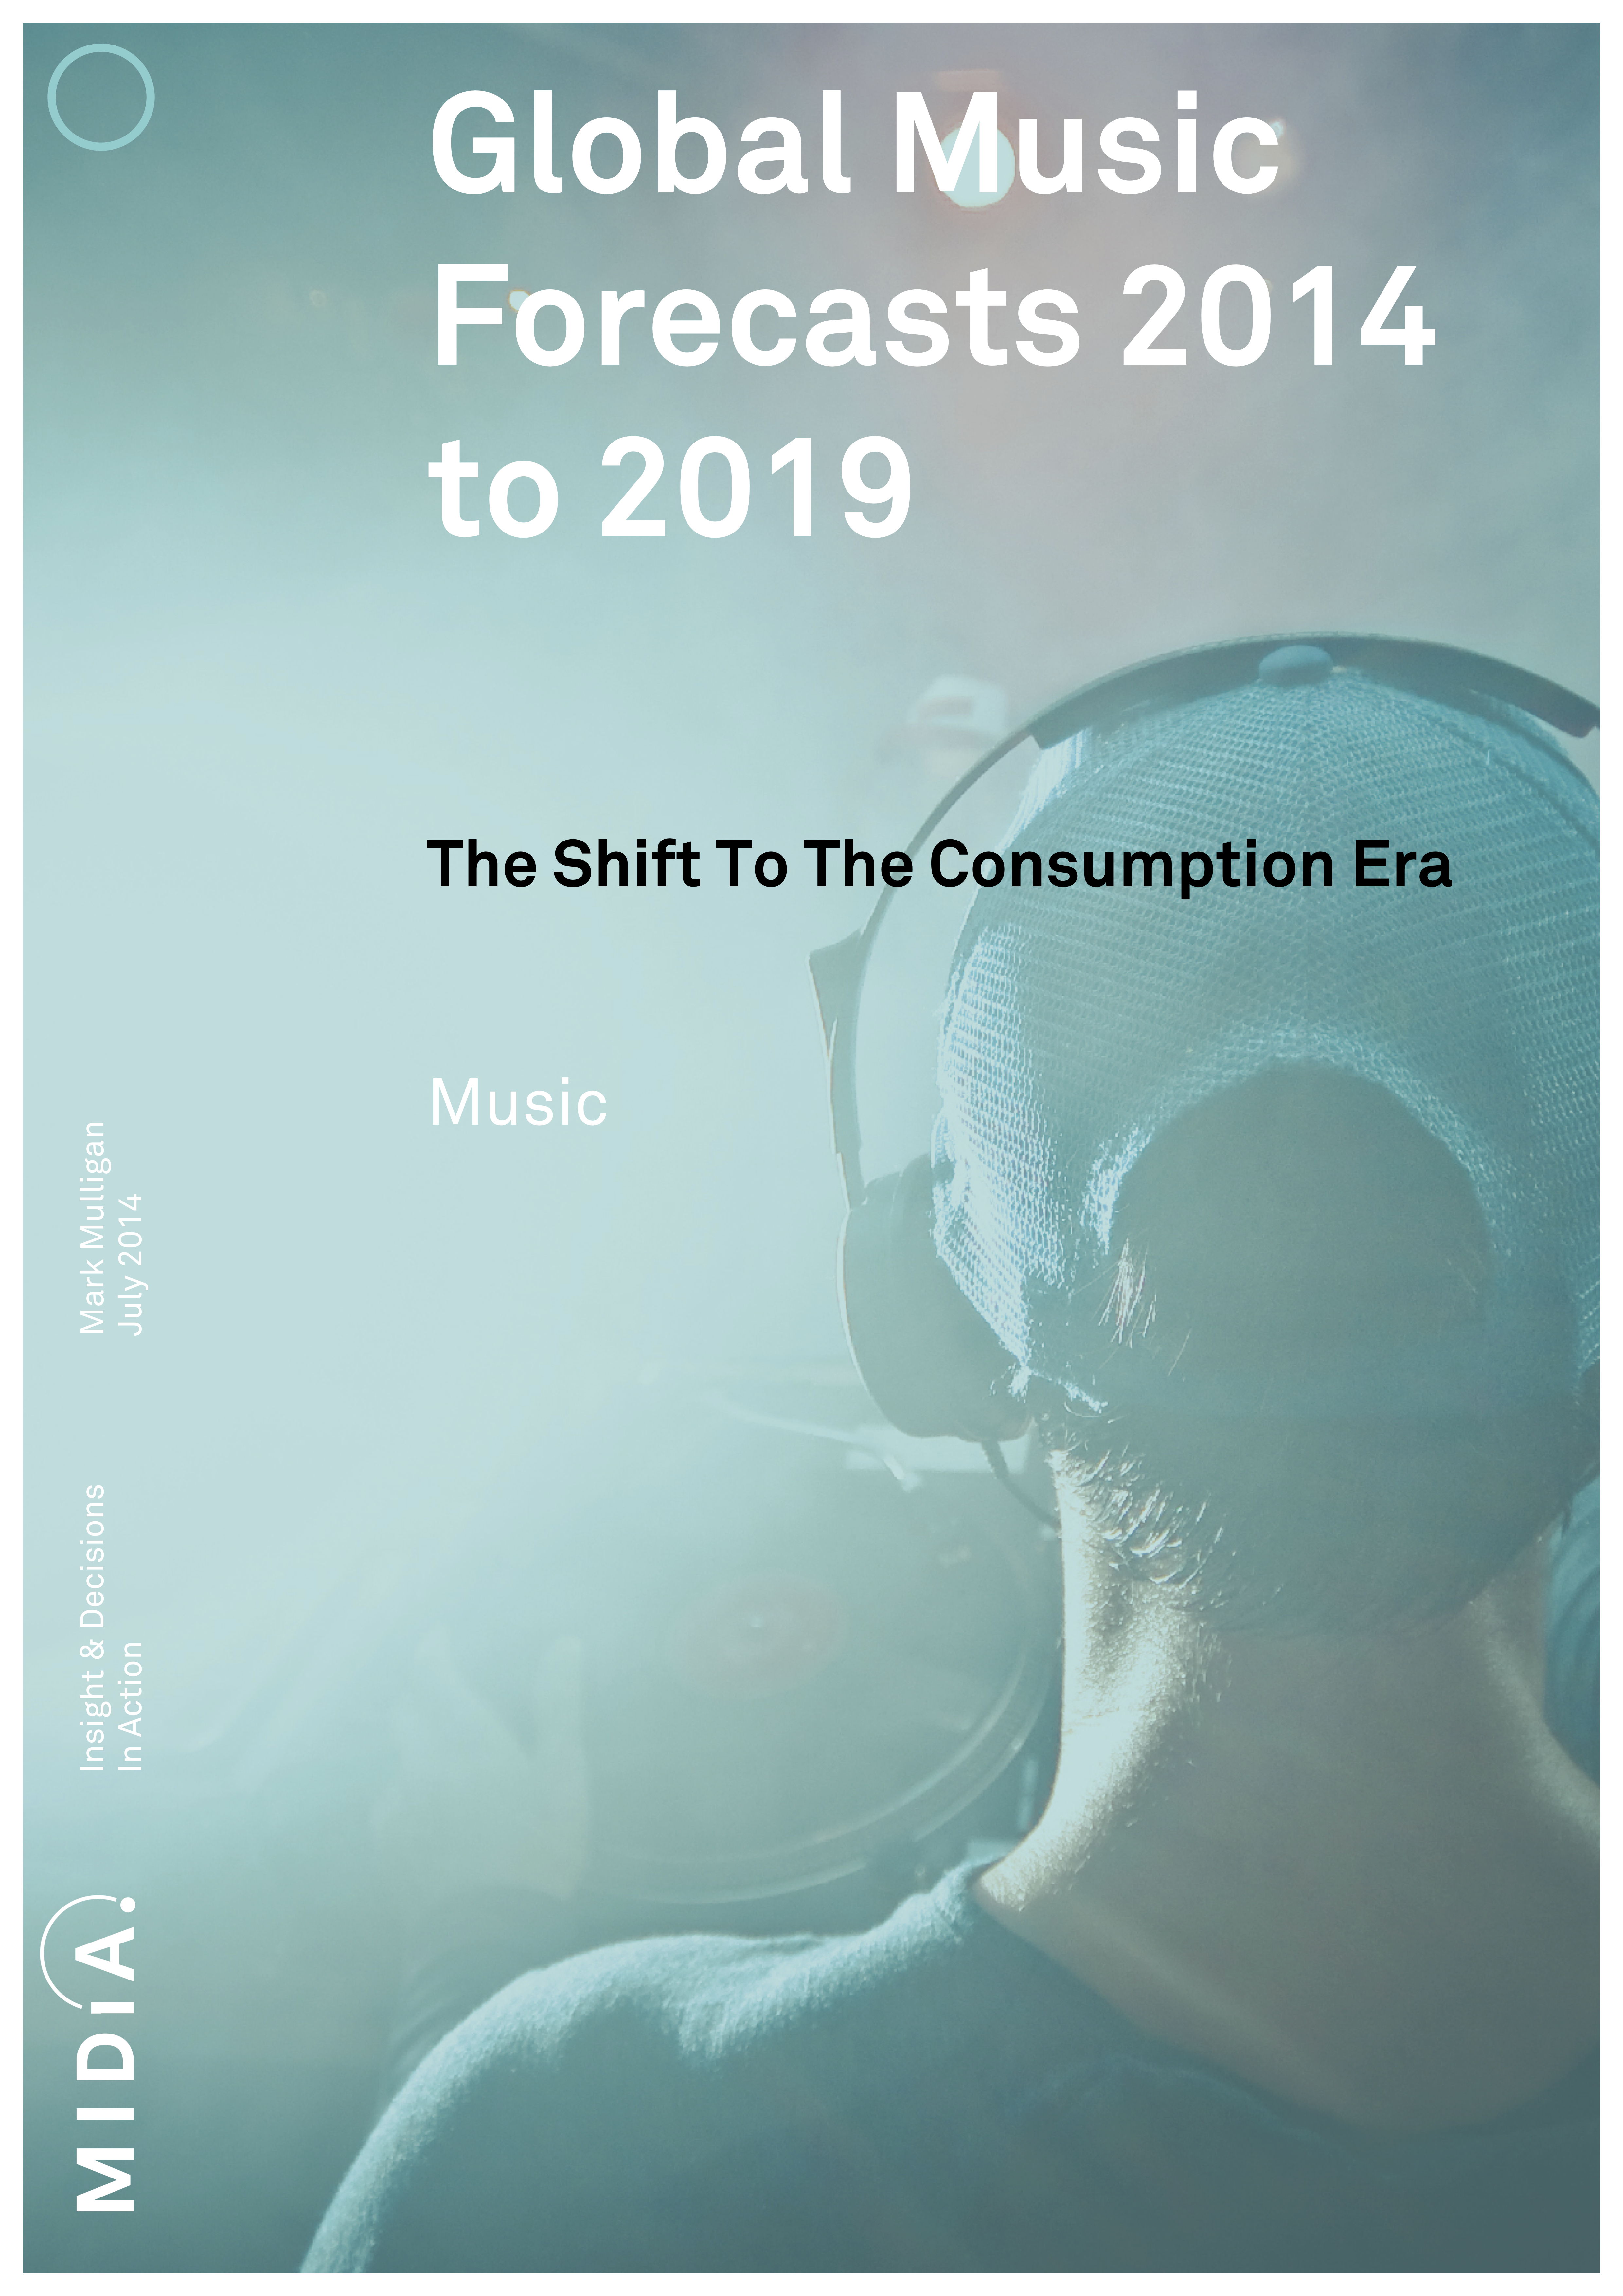 Cover image for Global Music Forecasts 2014 to 2019